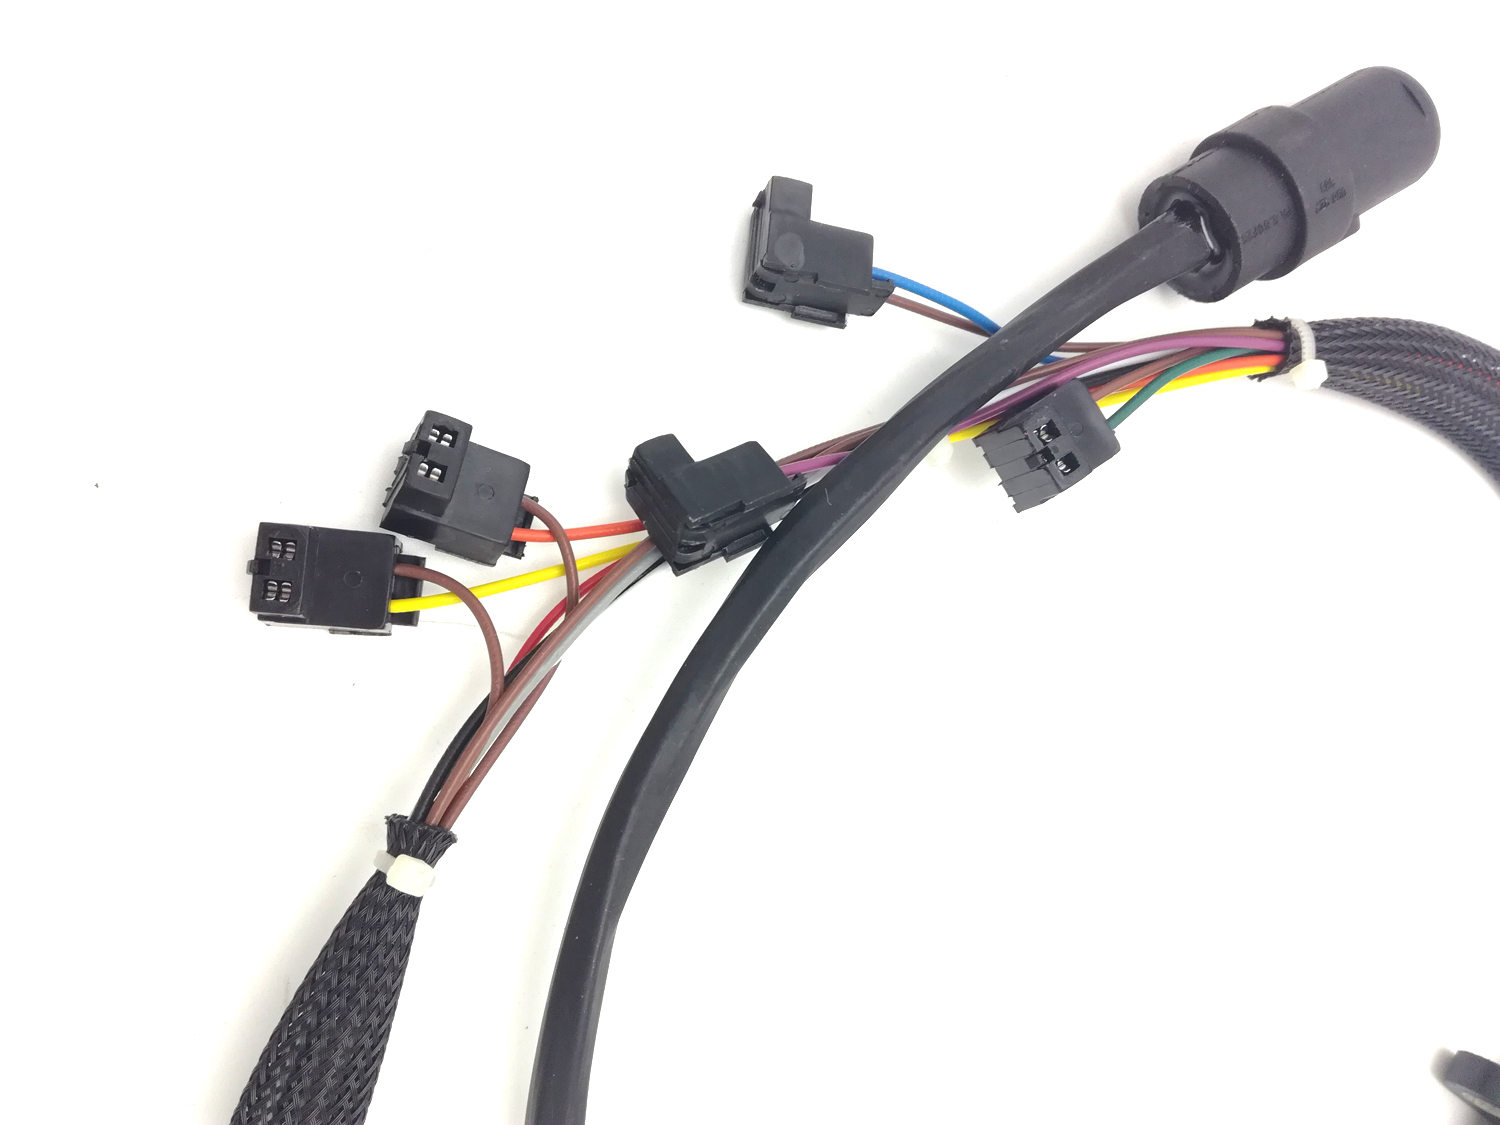 For VW audi 01M 095 096 097 Transmission Internal Wire Harness ...